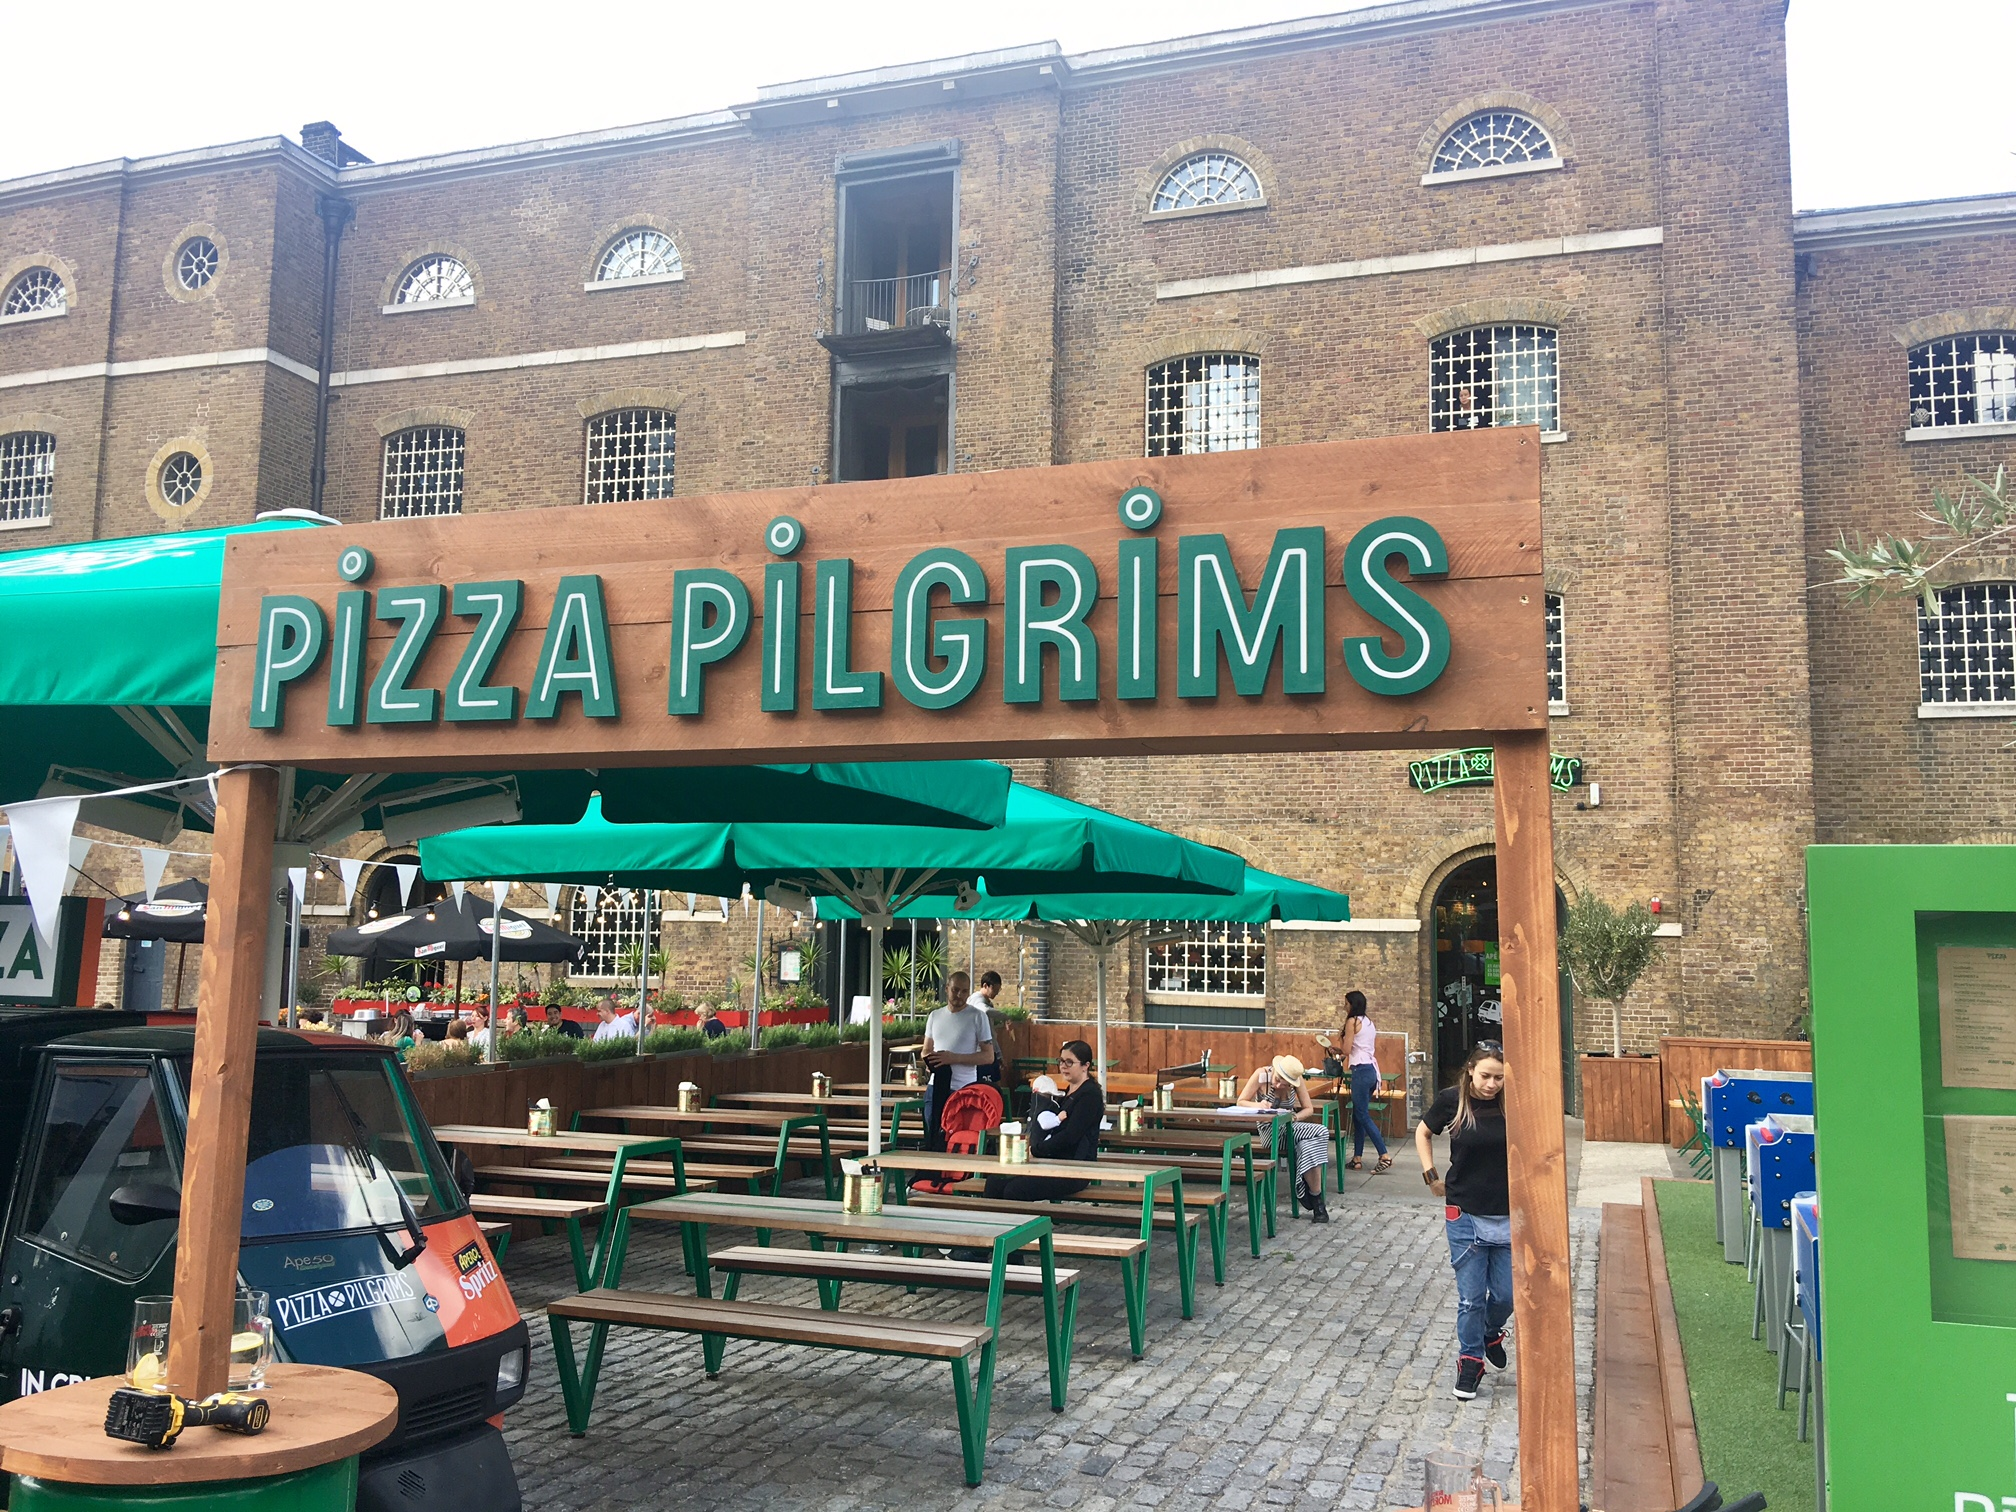 Pizza Pilgrims undefined classes in London